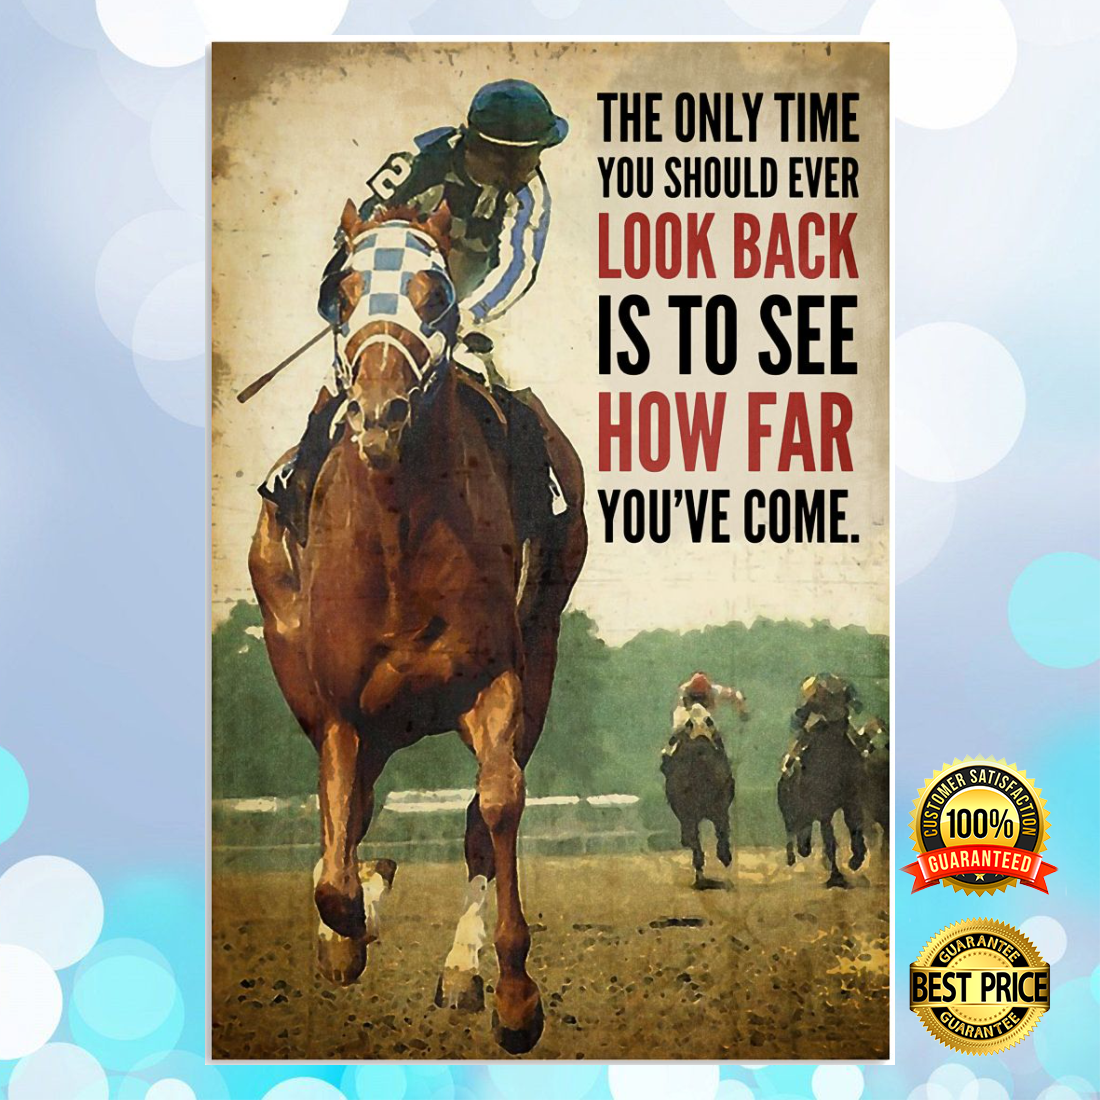 HORSE RACING THE ONLY TIME YOU SHOULD EVER LOOK BACK IS TO SEE HOW FAR YOU'VE COME POSTER 5